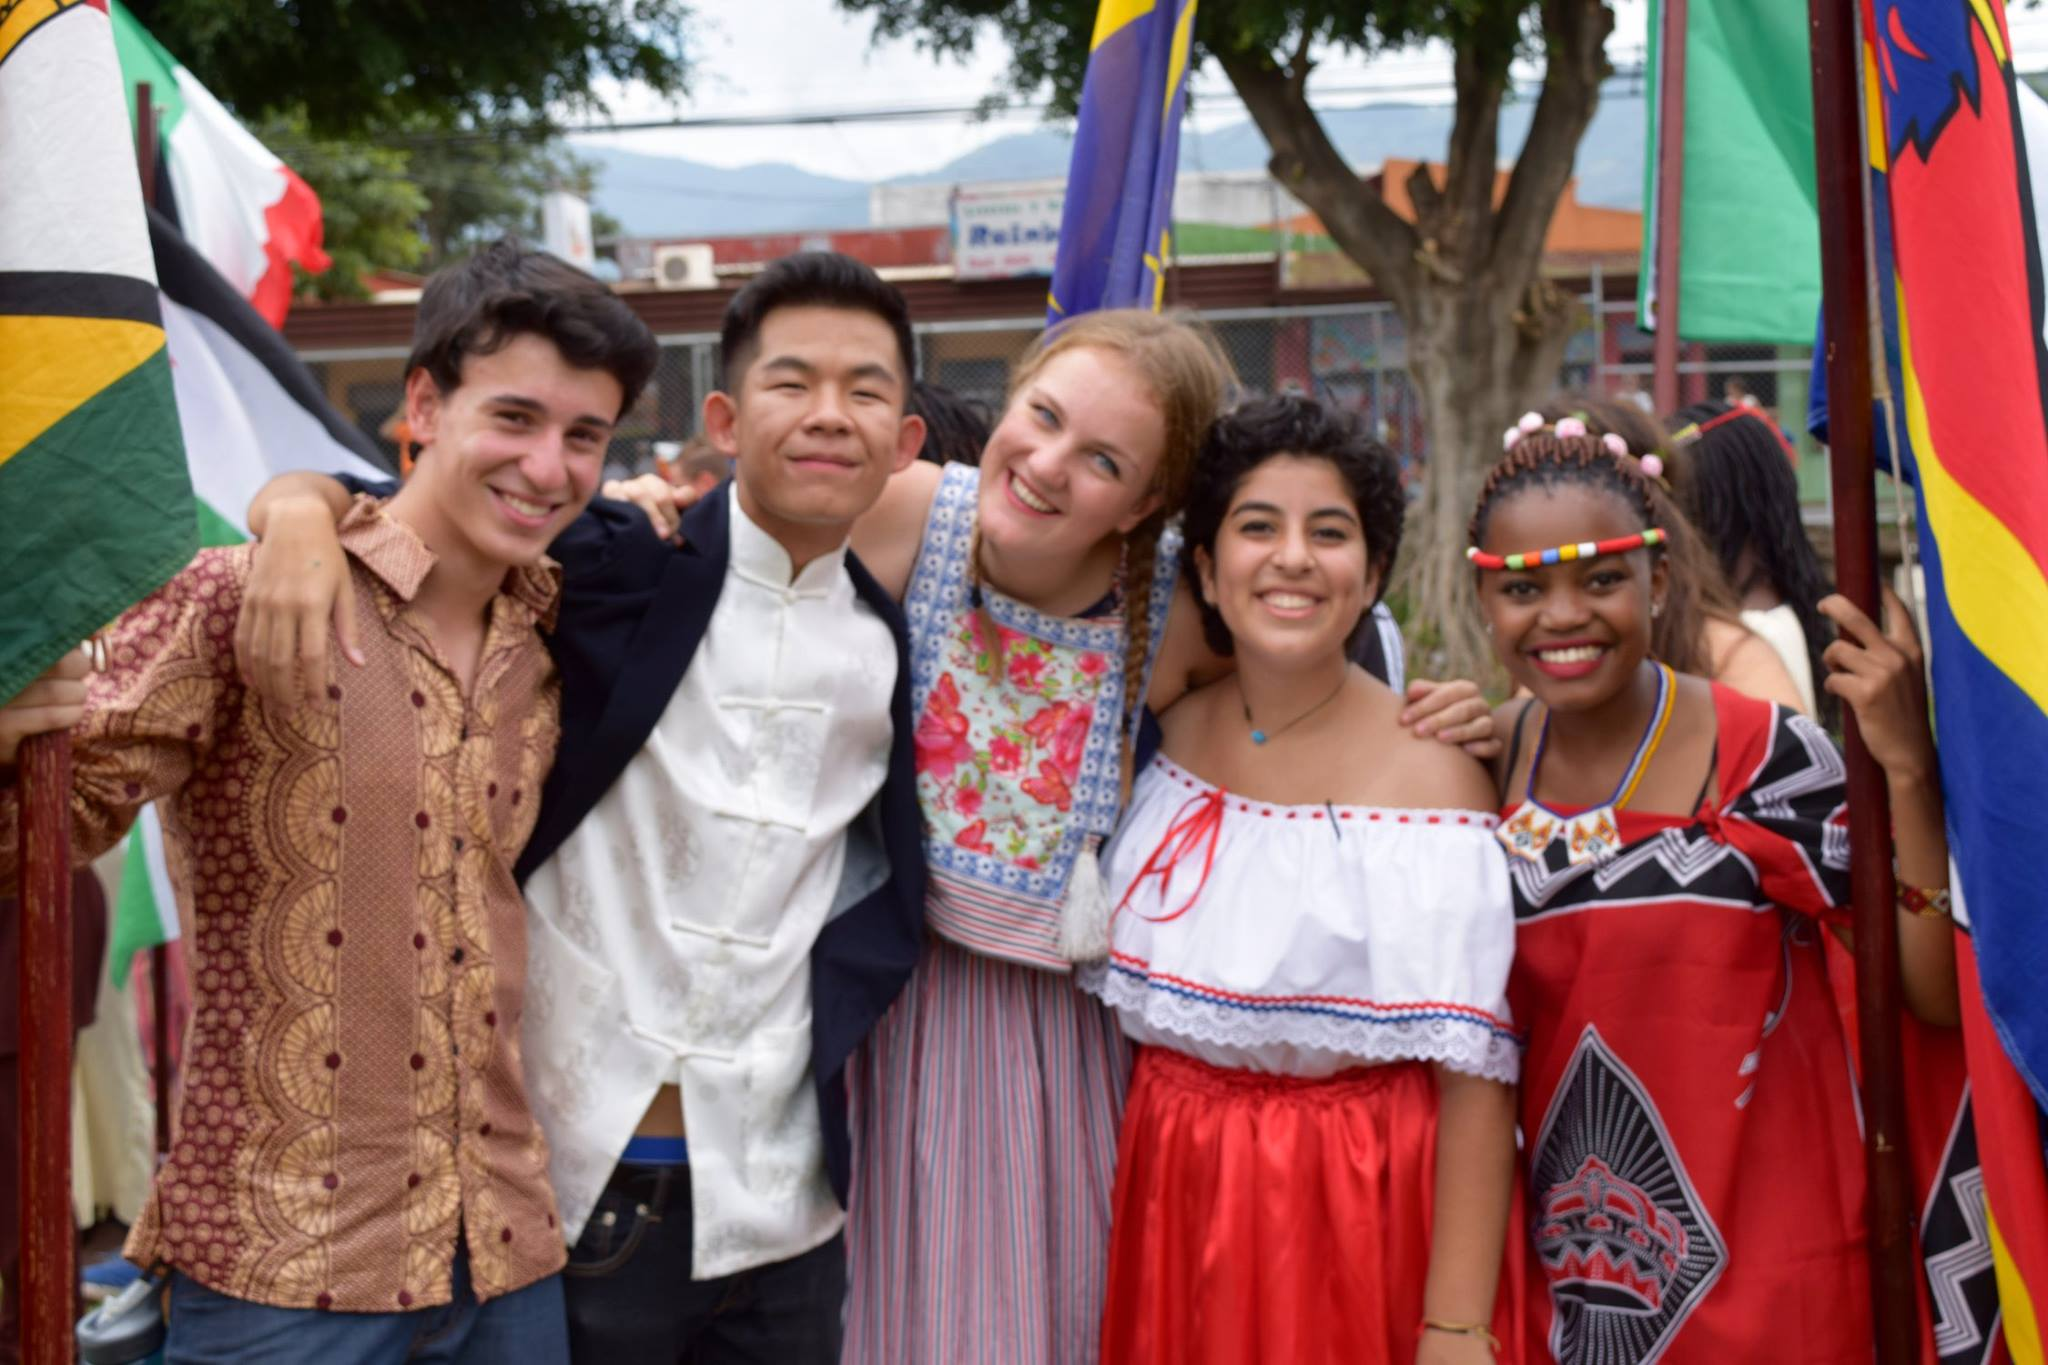 Jason celebrating Costa Rica Independence Day with friends from Zimbabwe, The Netherlands, Costa Rica and Swaziland.